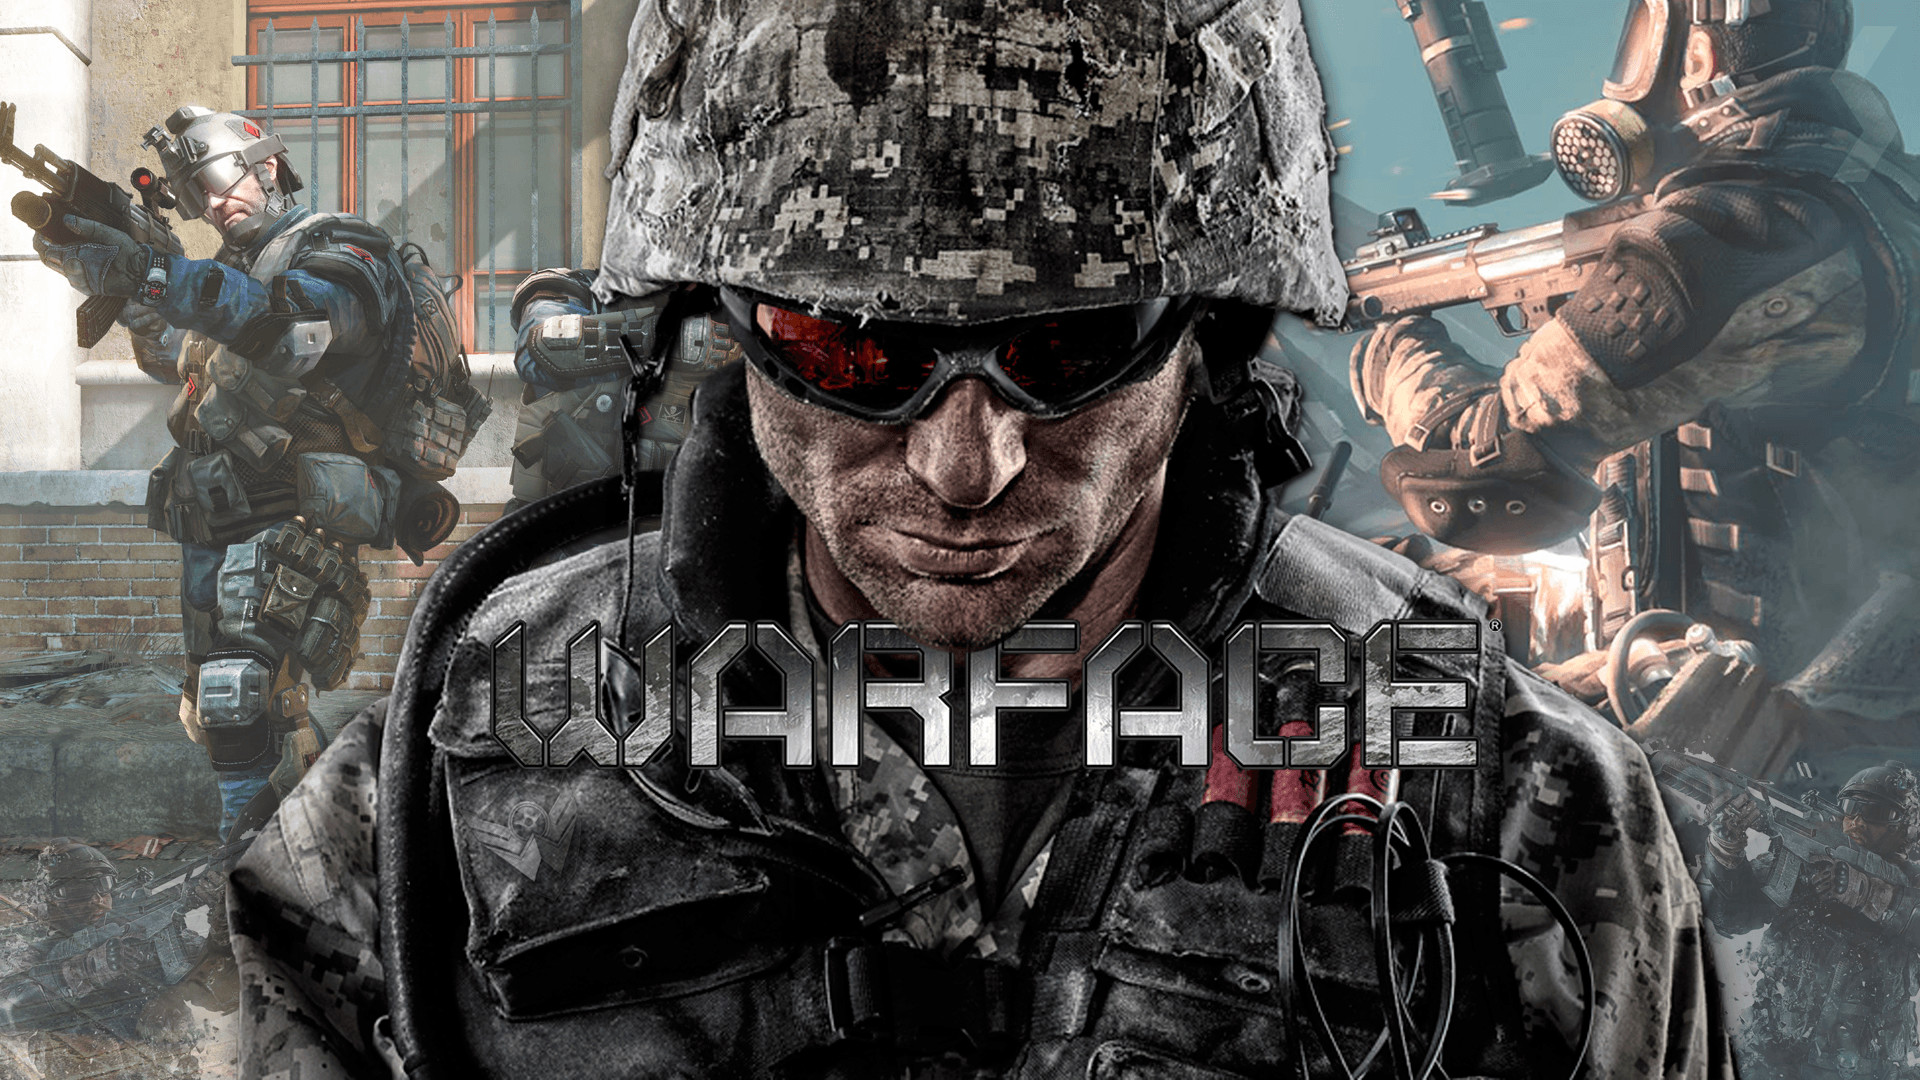 1920x1080 Warface Wallpapers Images Photos Pictures Backgrounds